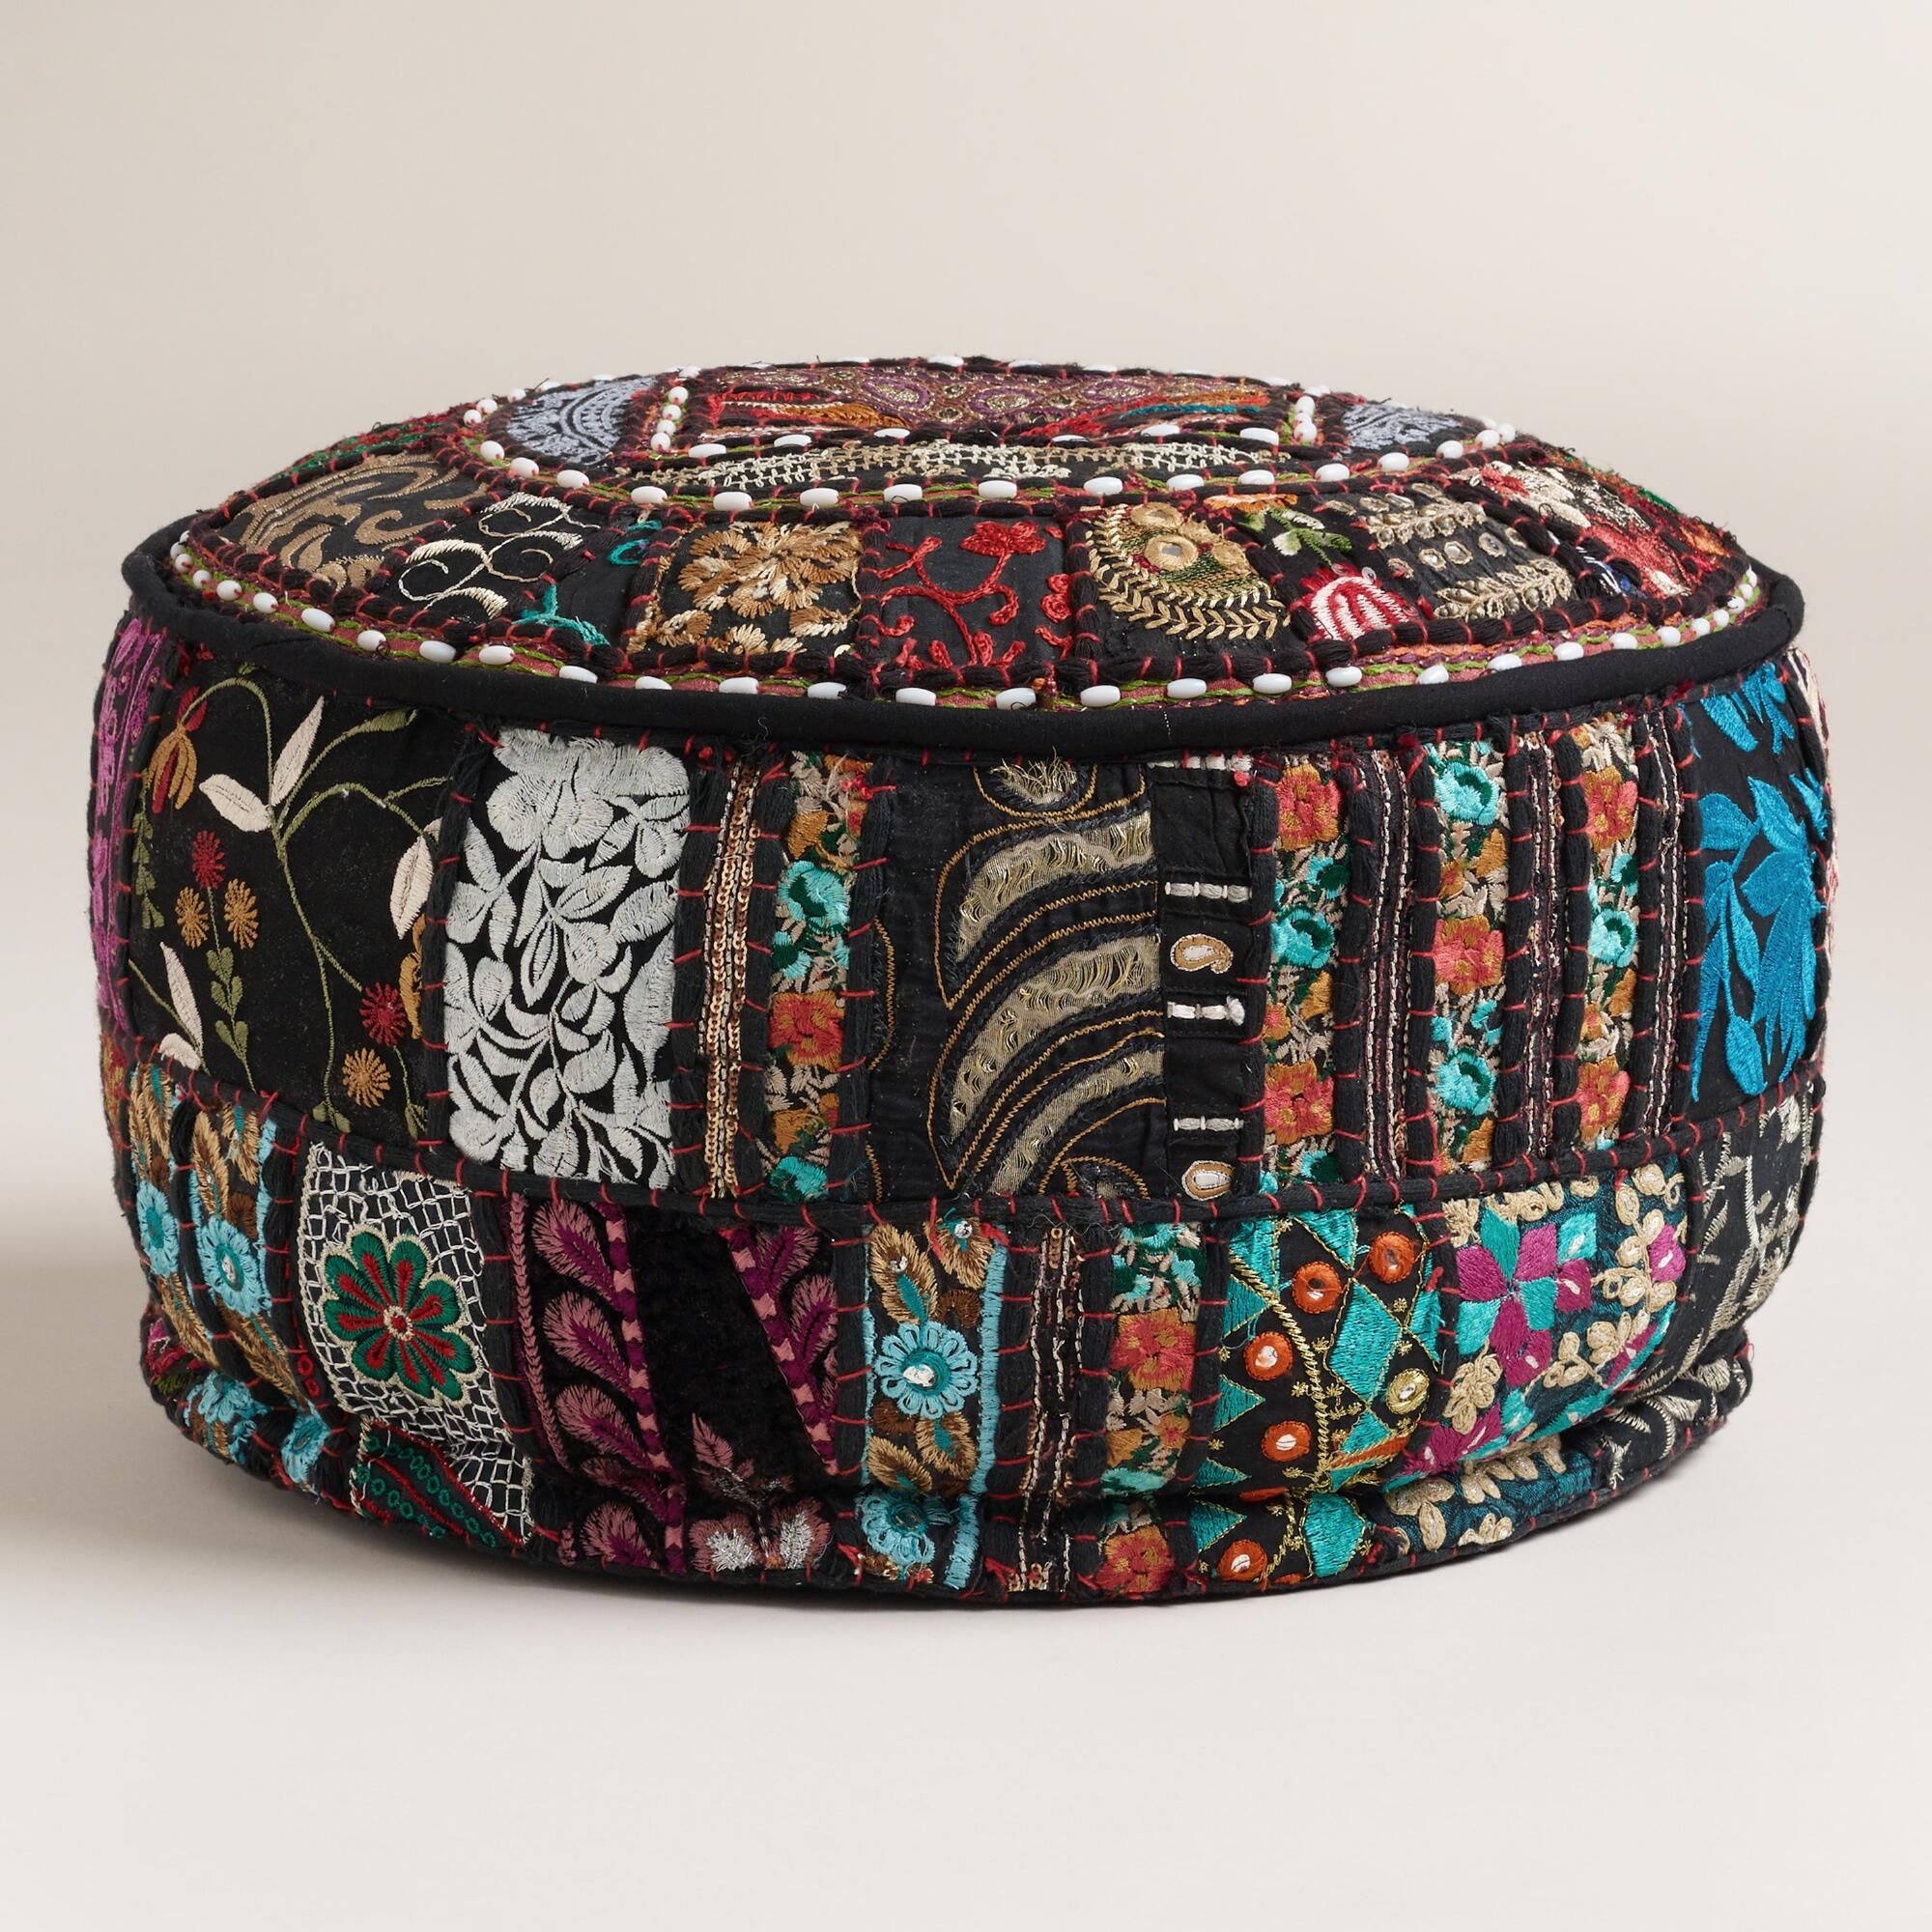 Made Of Vibrant Recycled Fabrics With Embellishments And